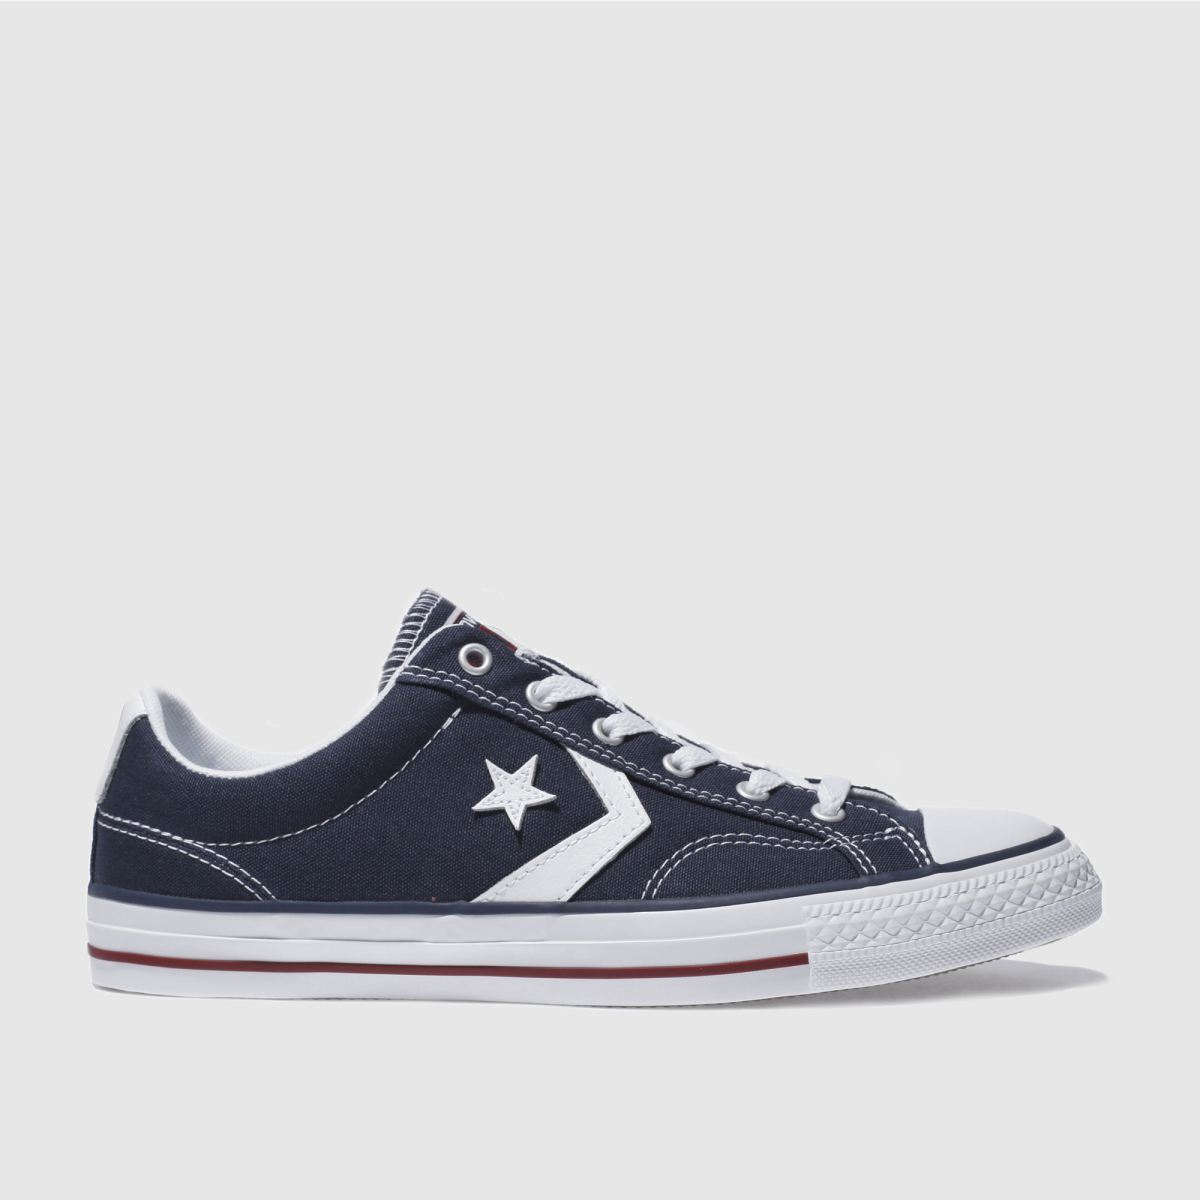 Converse Navy & White Star Player Re-mastered Trainers